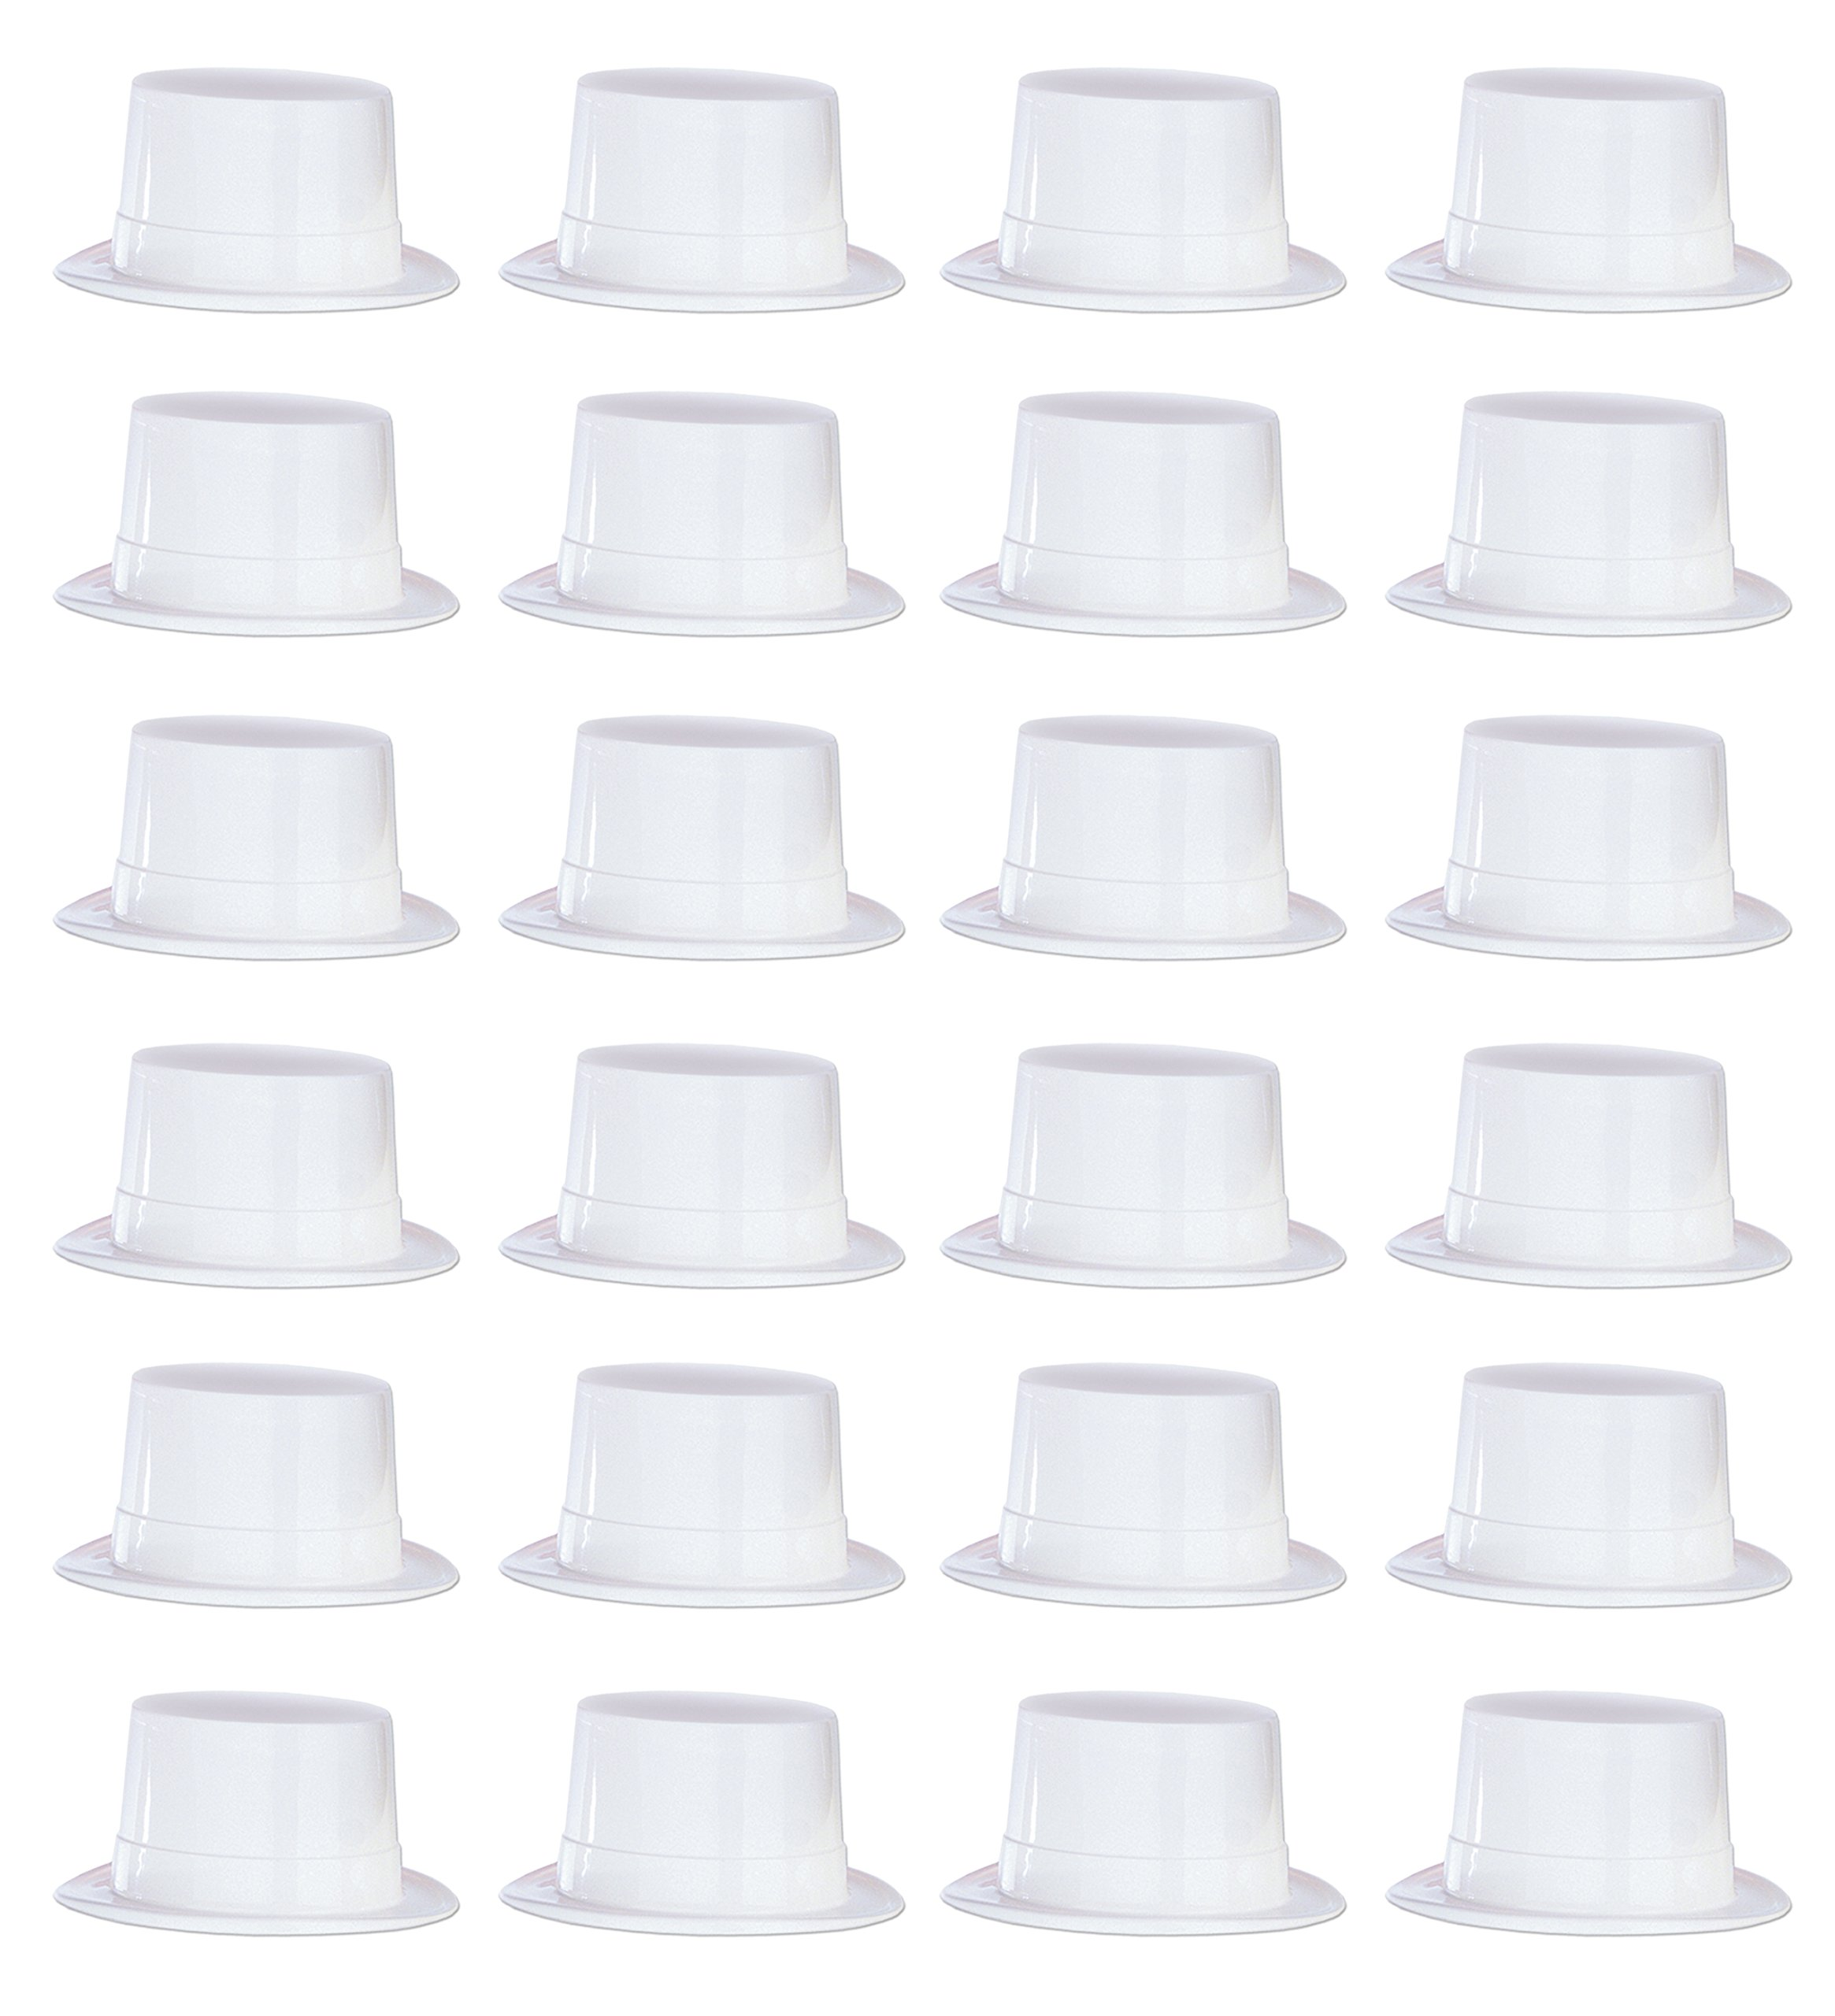 Beistle 66625 24-Piece Plastic Toppers, White